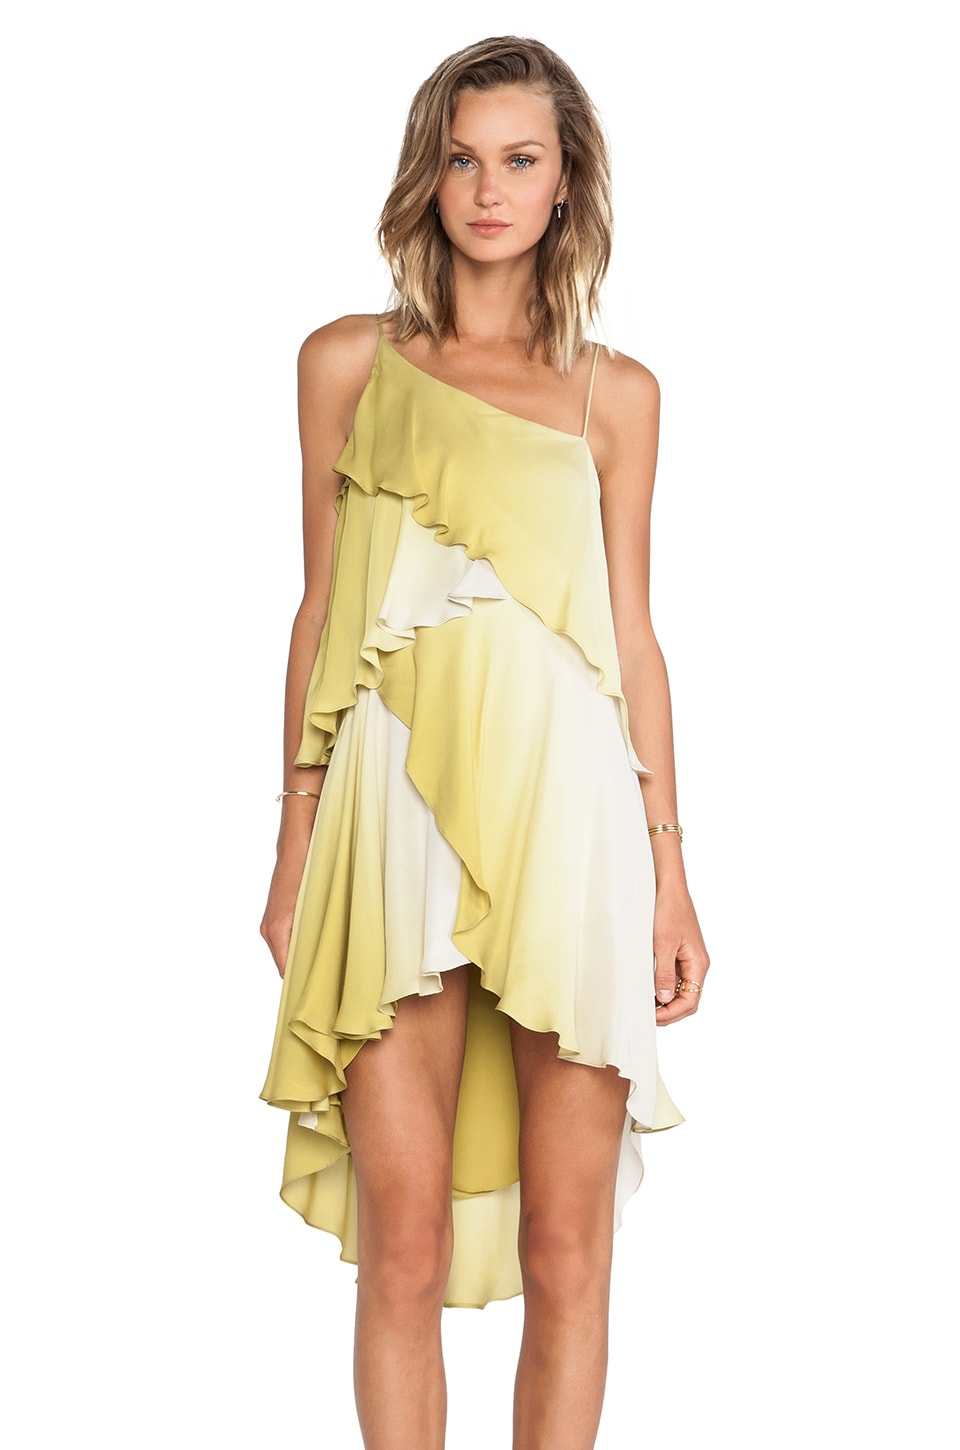 Haute Hippie Ruffle Dress in Limerick/Swan